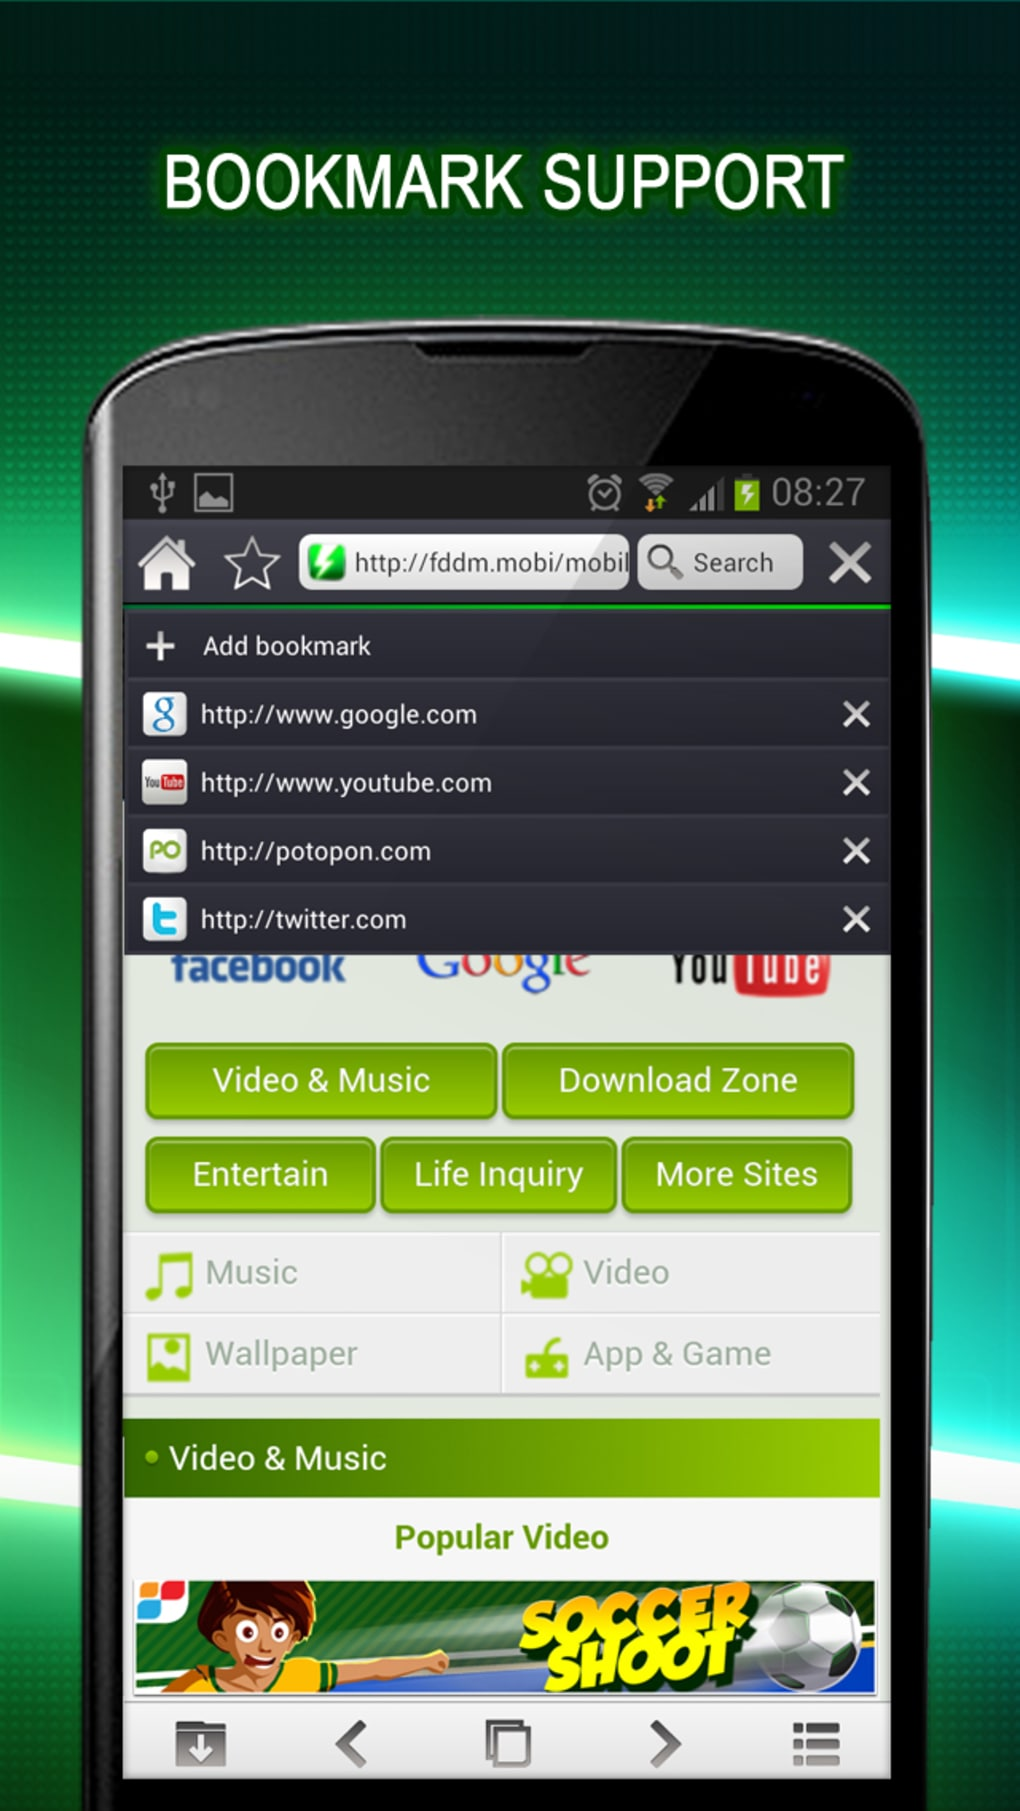 Download Manager for Android (Android) - Download